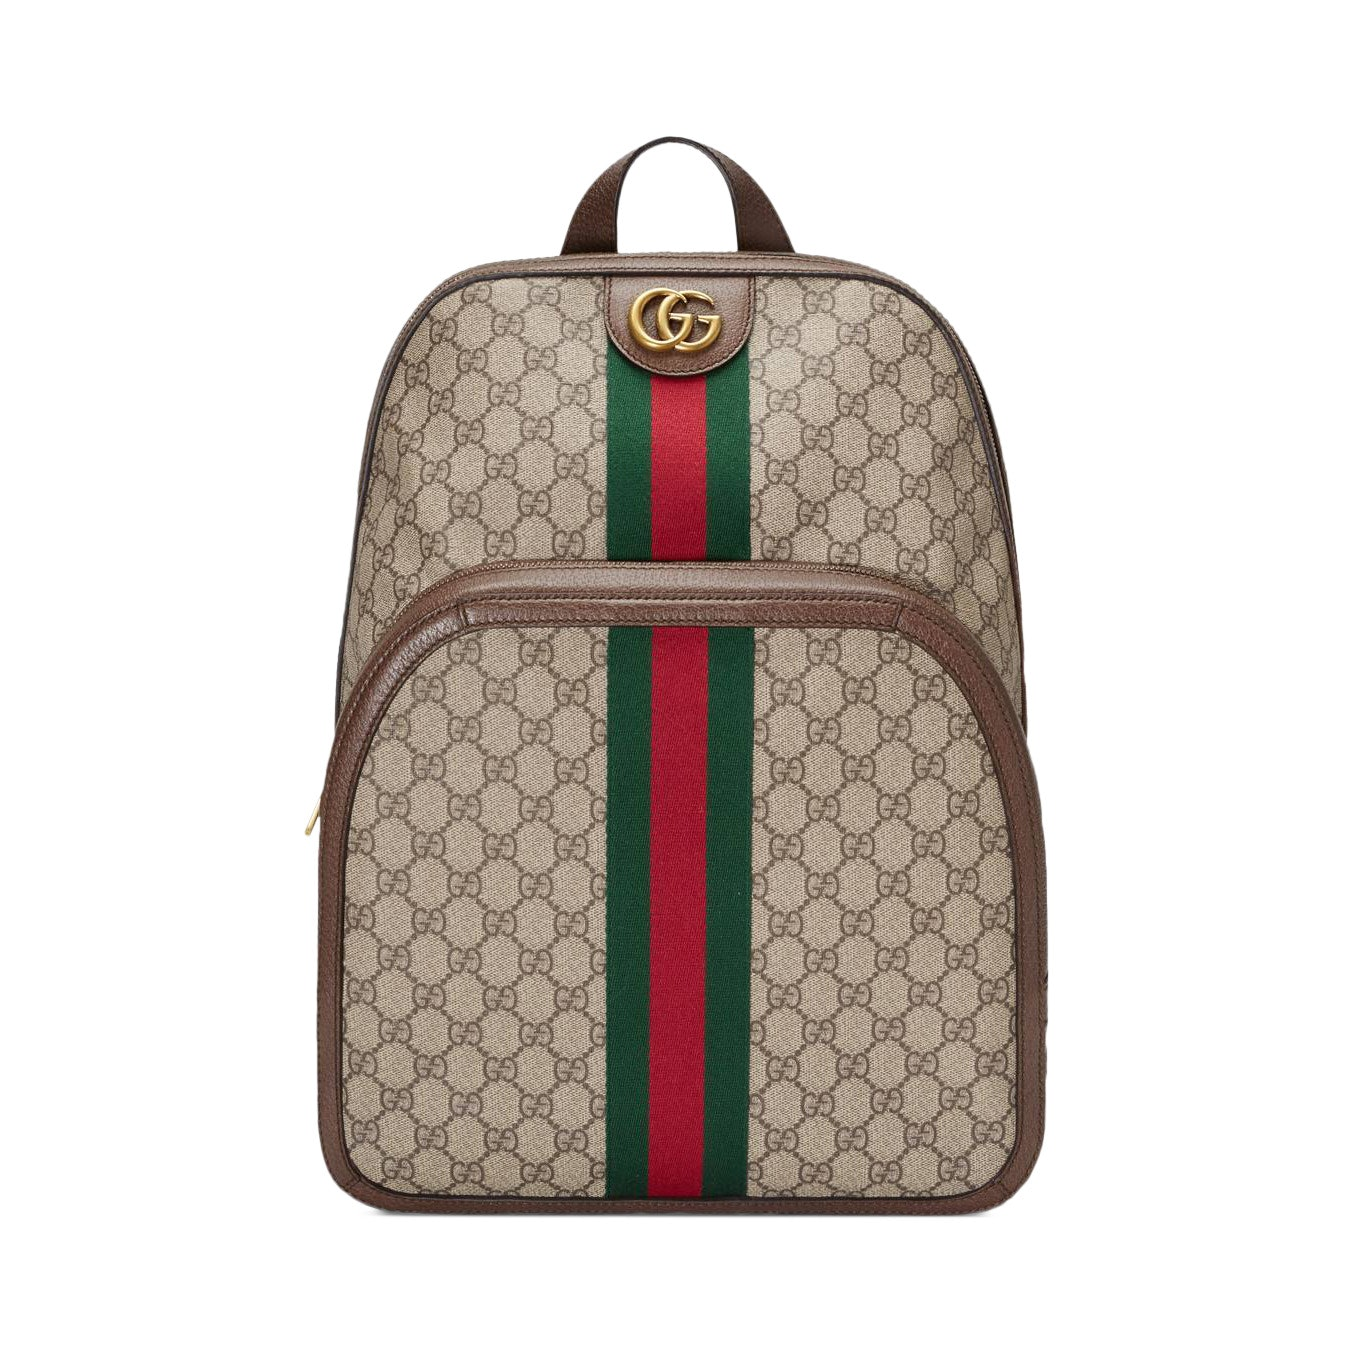 Gucci Ophidia Backpack GG Supreme Medium Beige/Ebony